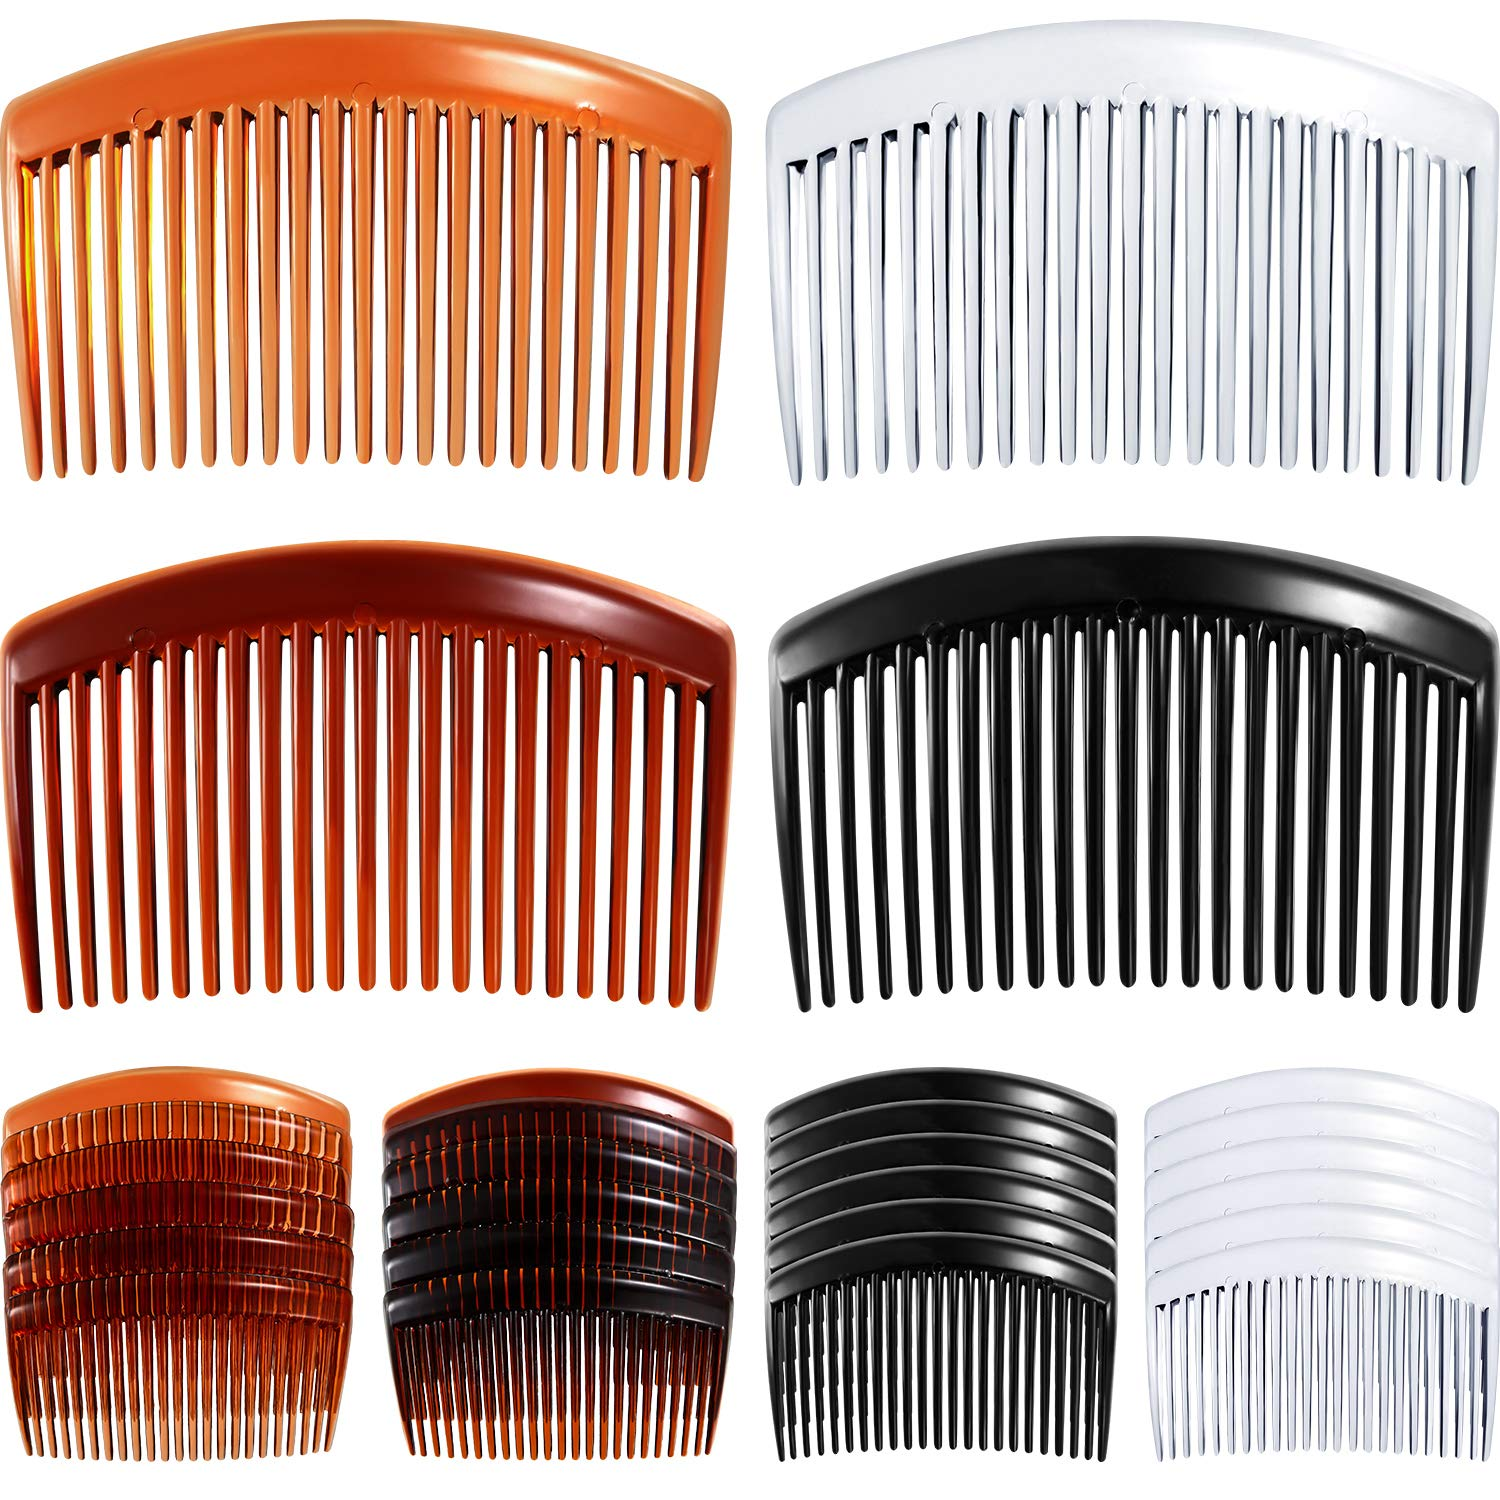 24 Pieces Hair Comb Plastic Hair Side Combs Straight Teeth Hair Clip Comb Bridal Wedding Veil Comb for Fine Hair : Beauty